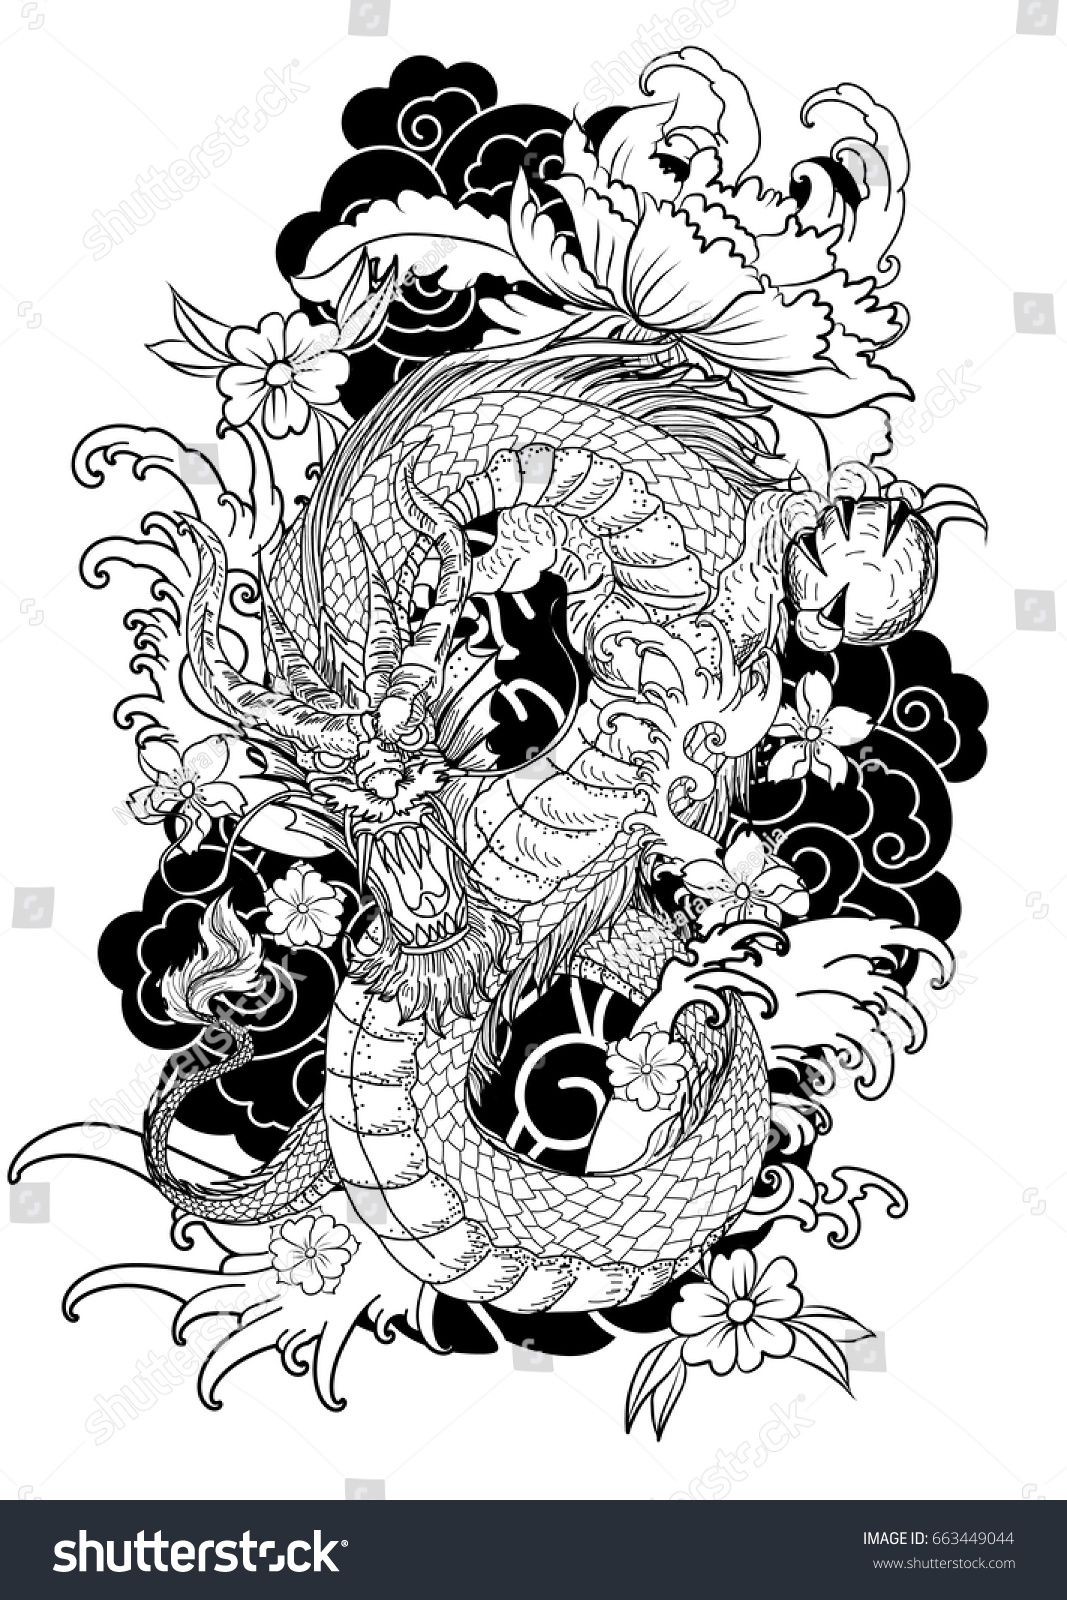 Line Drawing Dragon Tattoo : Hand drawn dragon tattoo coloring book japanese style